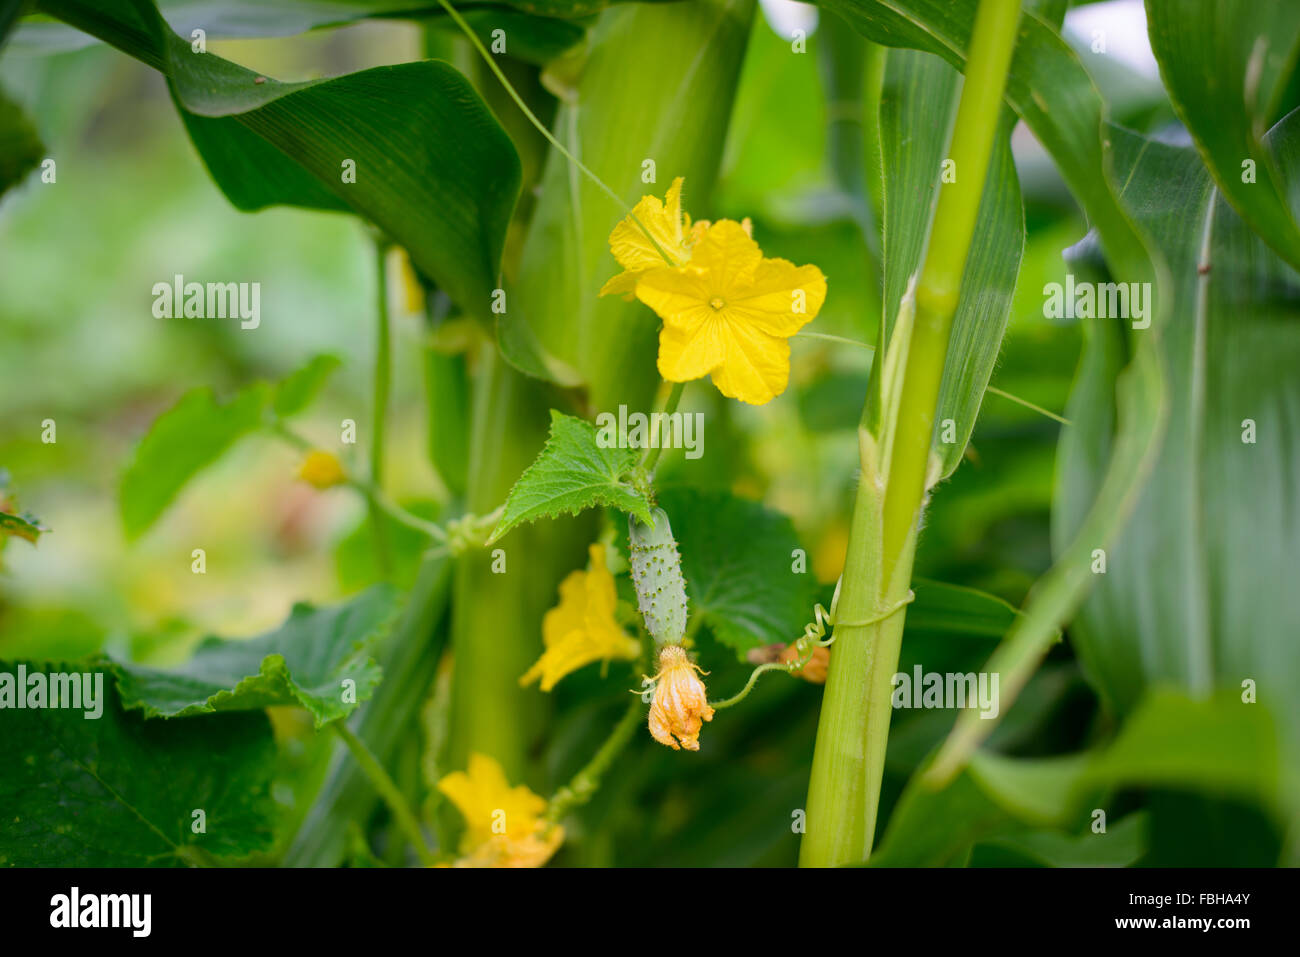 Cucumber vine with germs growing on corn plant - Stock Image